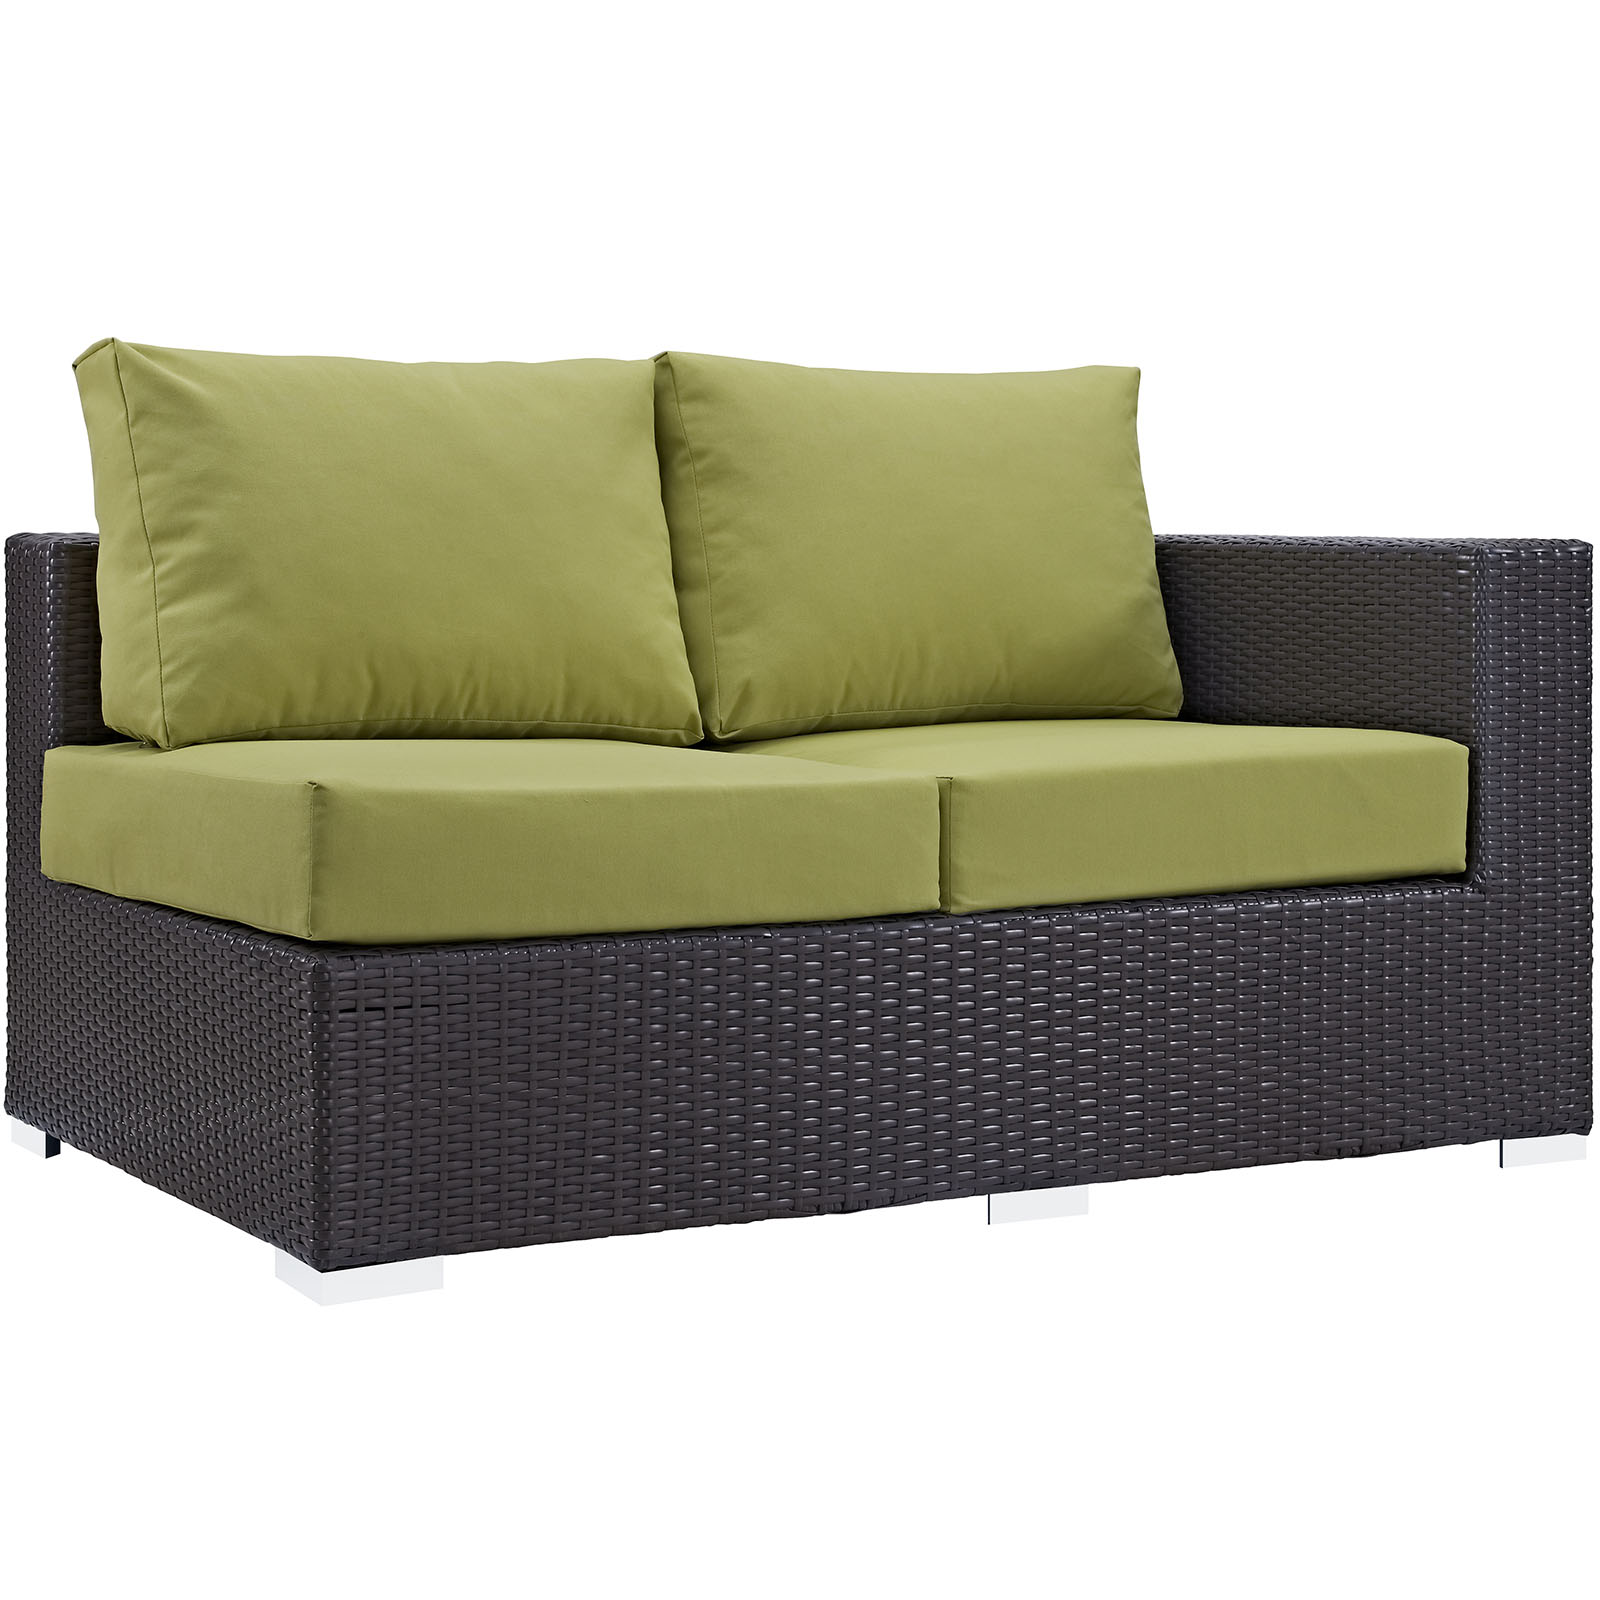 Modern Contemporary Urban Design Outdoor Patio Balcony Right Arm Loveseat Sofa, Green, Rattan